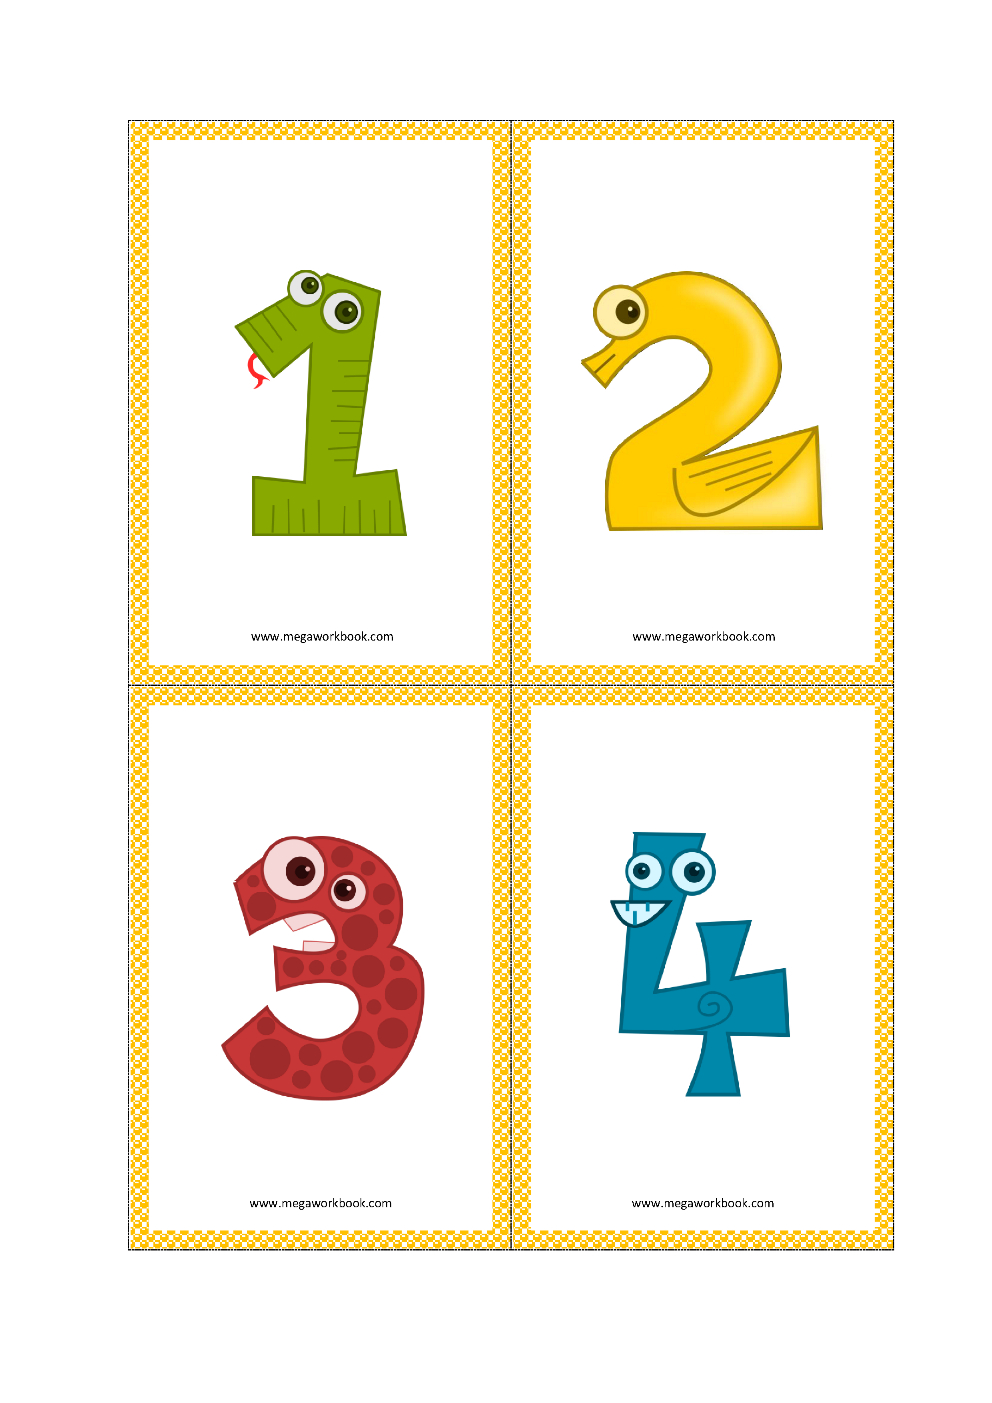 Greek Alphabet Quizlet Printable Numbers 1-10 Flashcards